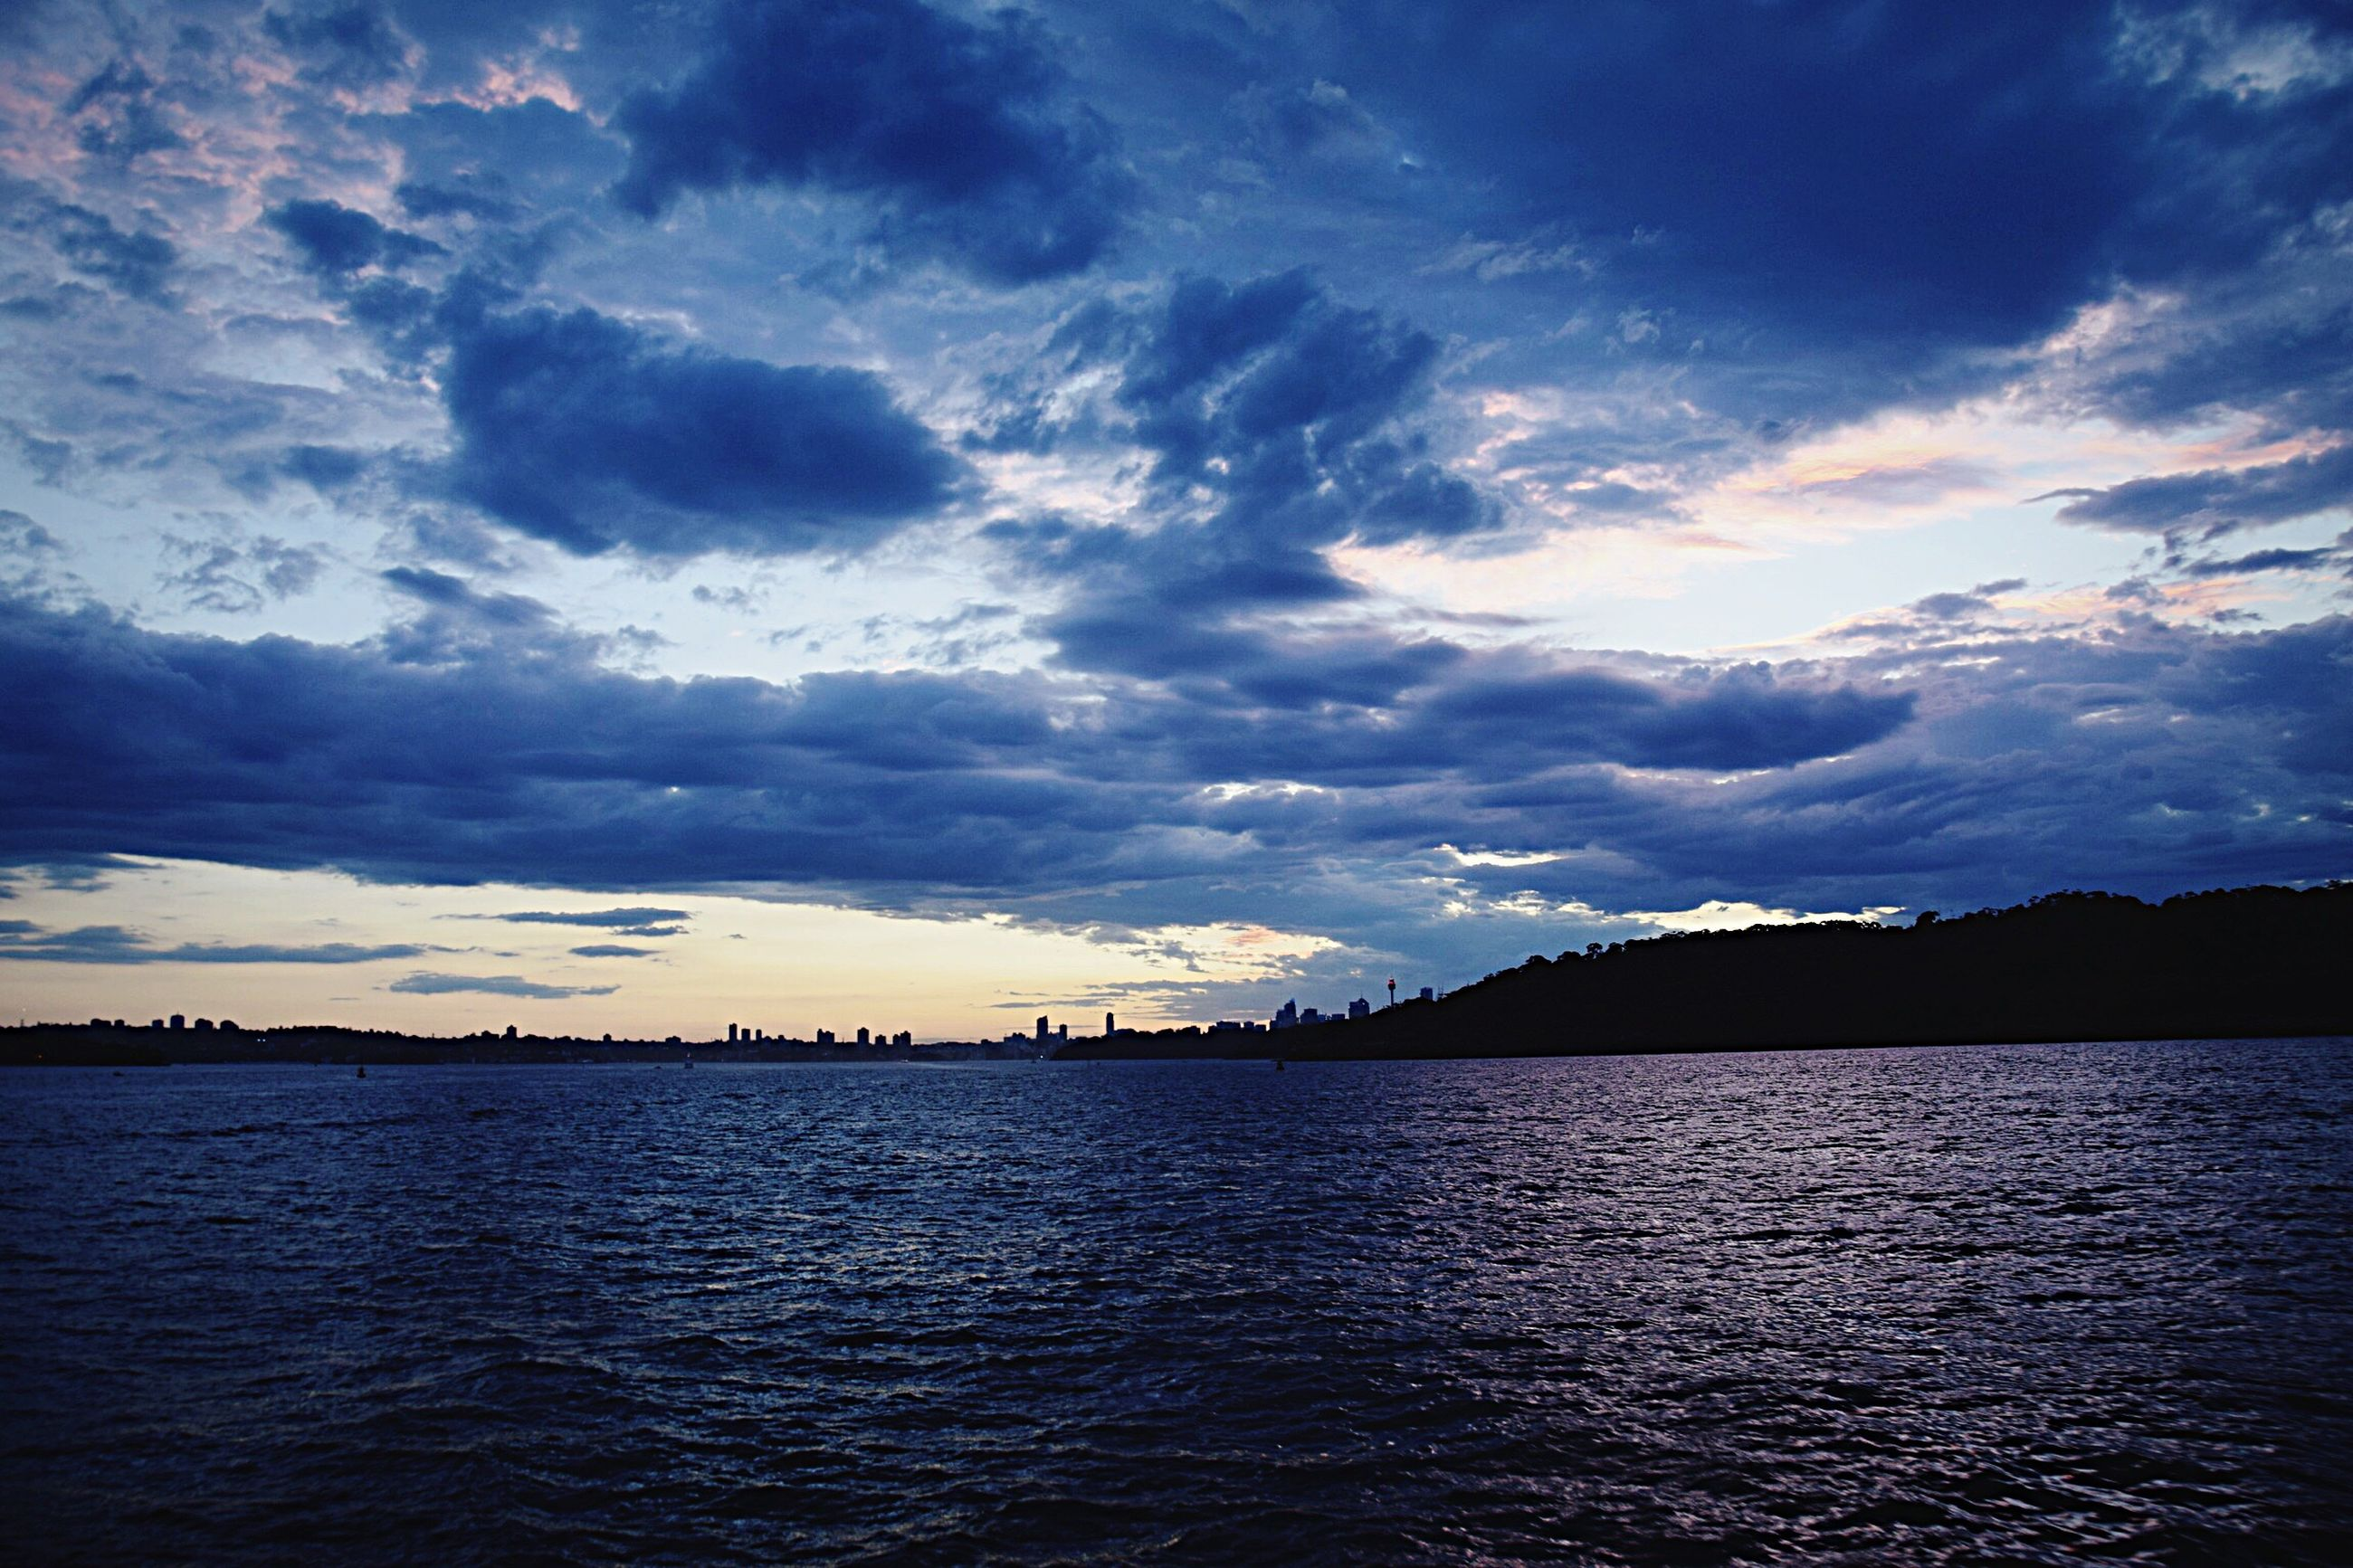 cloud - sky, beauty in nature, sky, sea, reflection, scenics, awe, dramatic sky, idyllic, outdoors, no people, sunset, tranquil scene, nature, tranquility, water, storm cloud, day